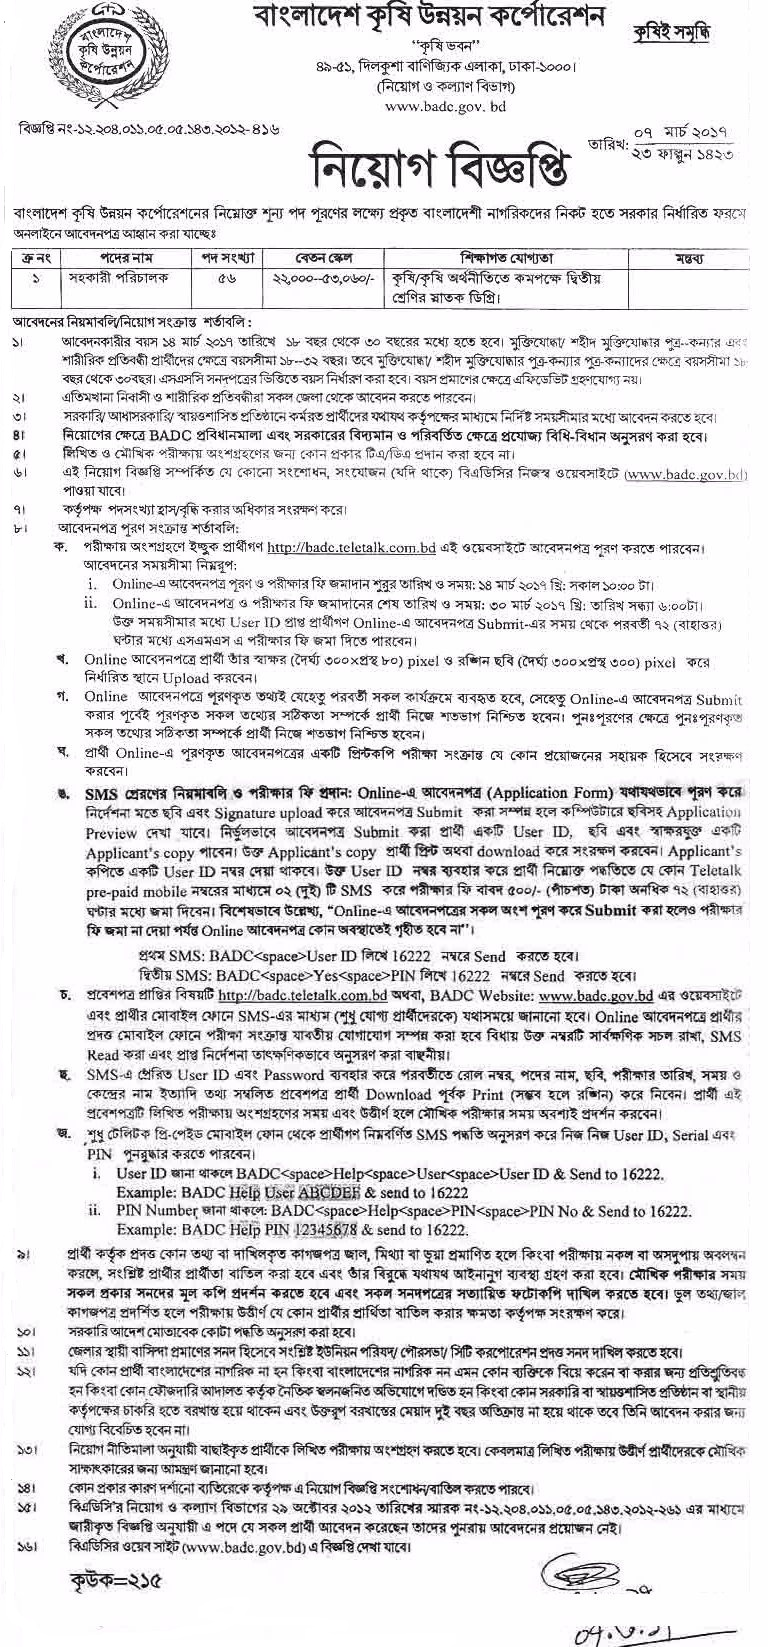 Bangladesh Agriculture Development Corporation Job Circular 2017